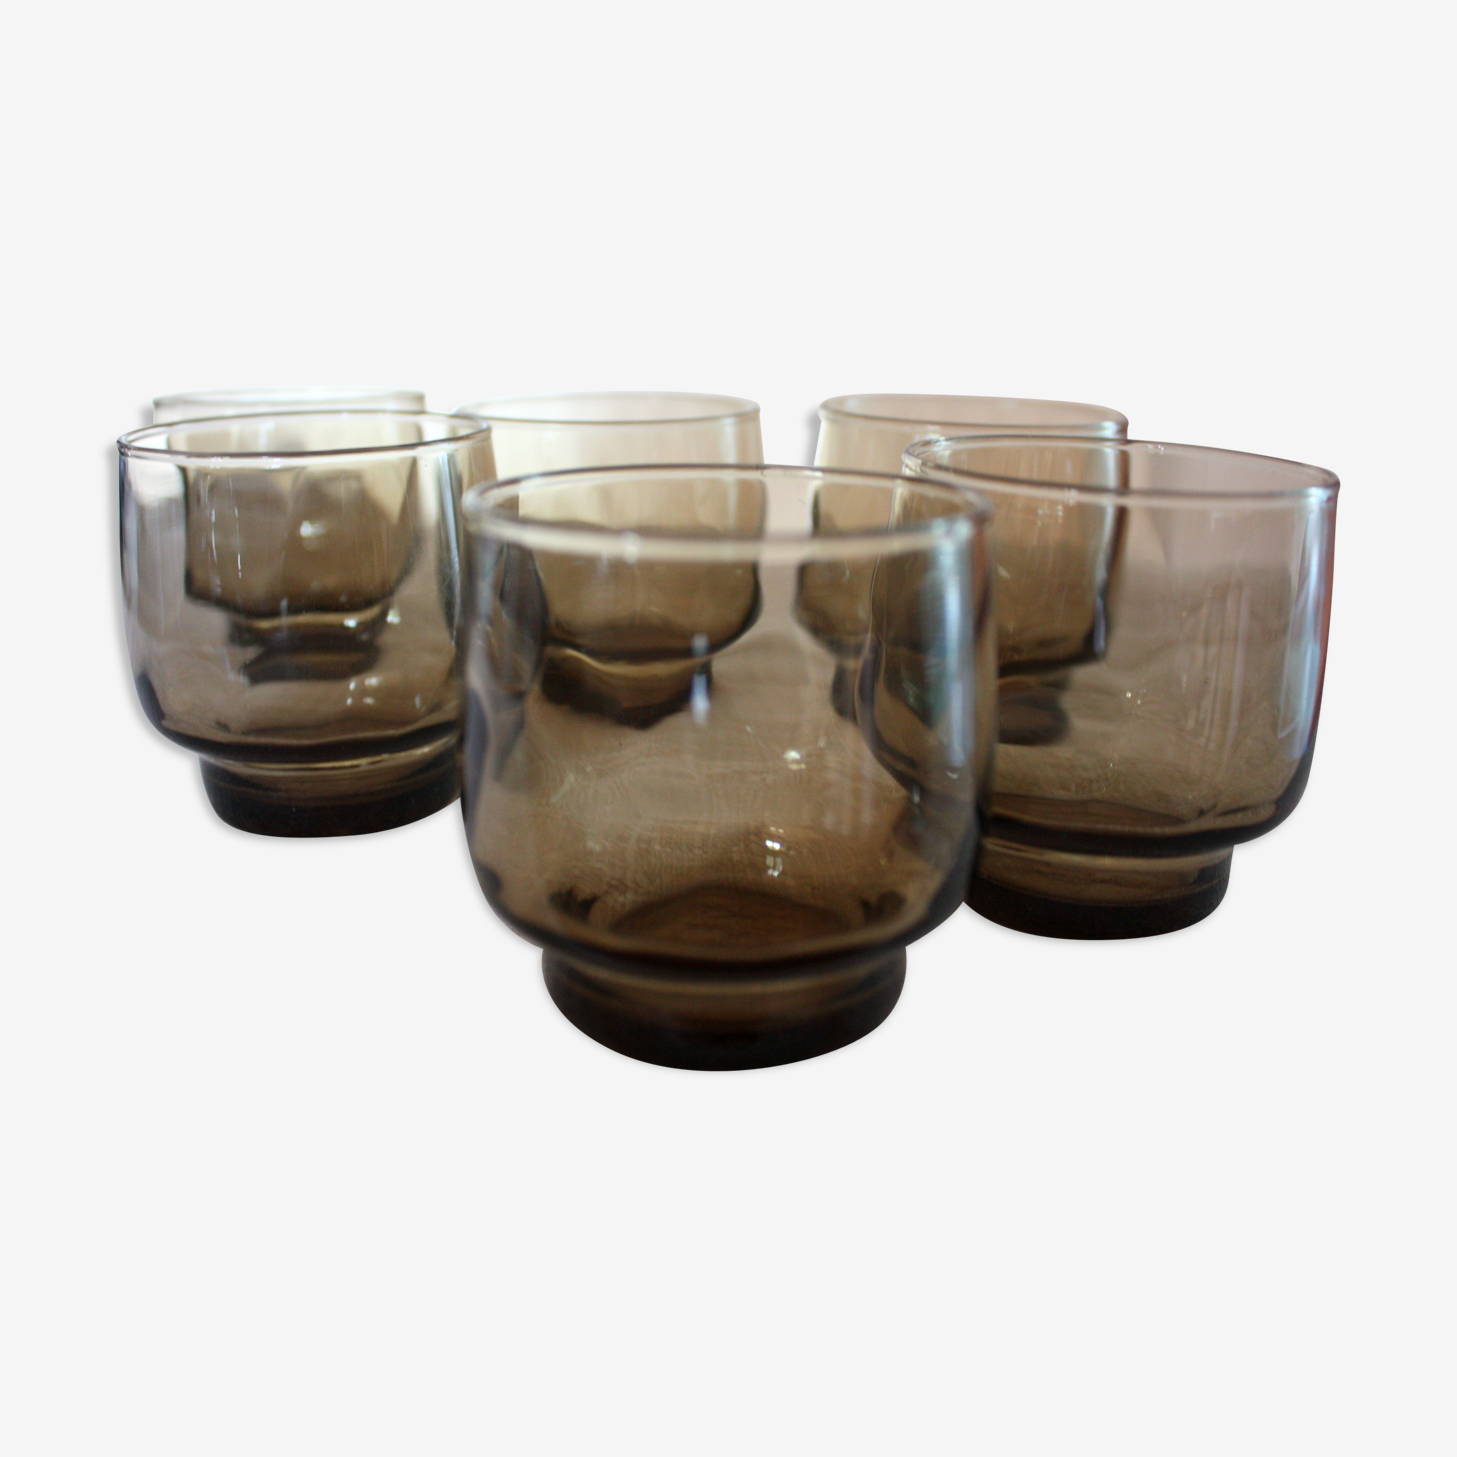 6 cups water or smoked wine